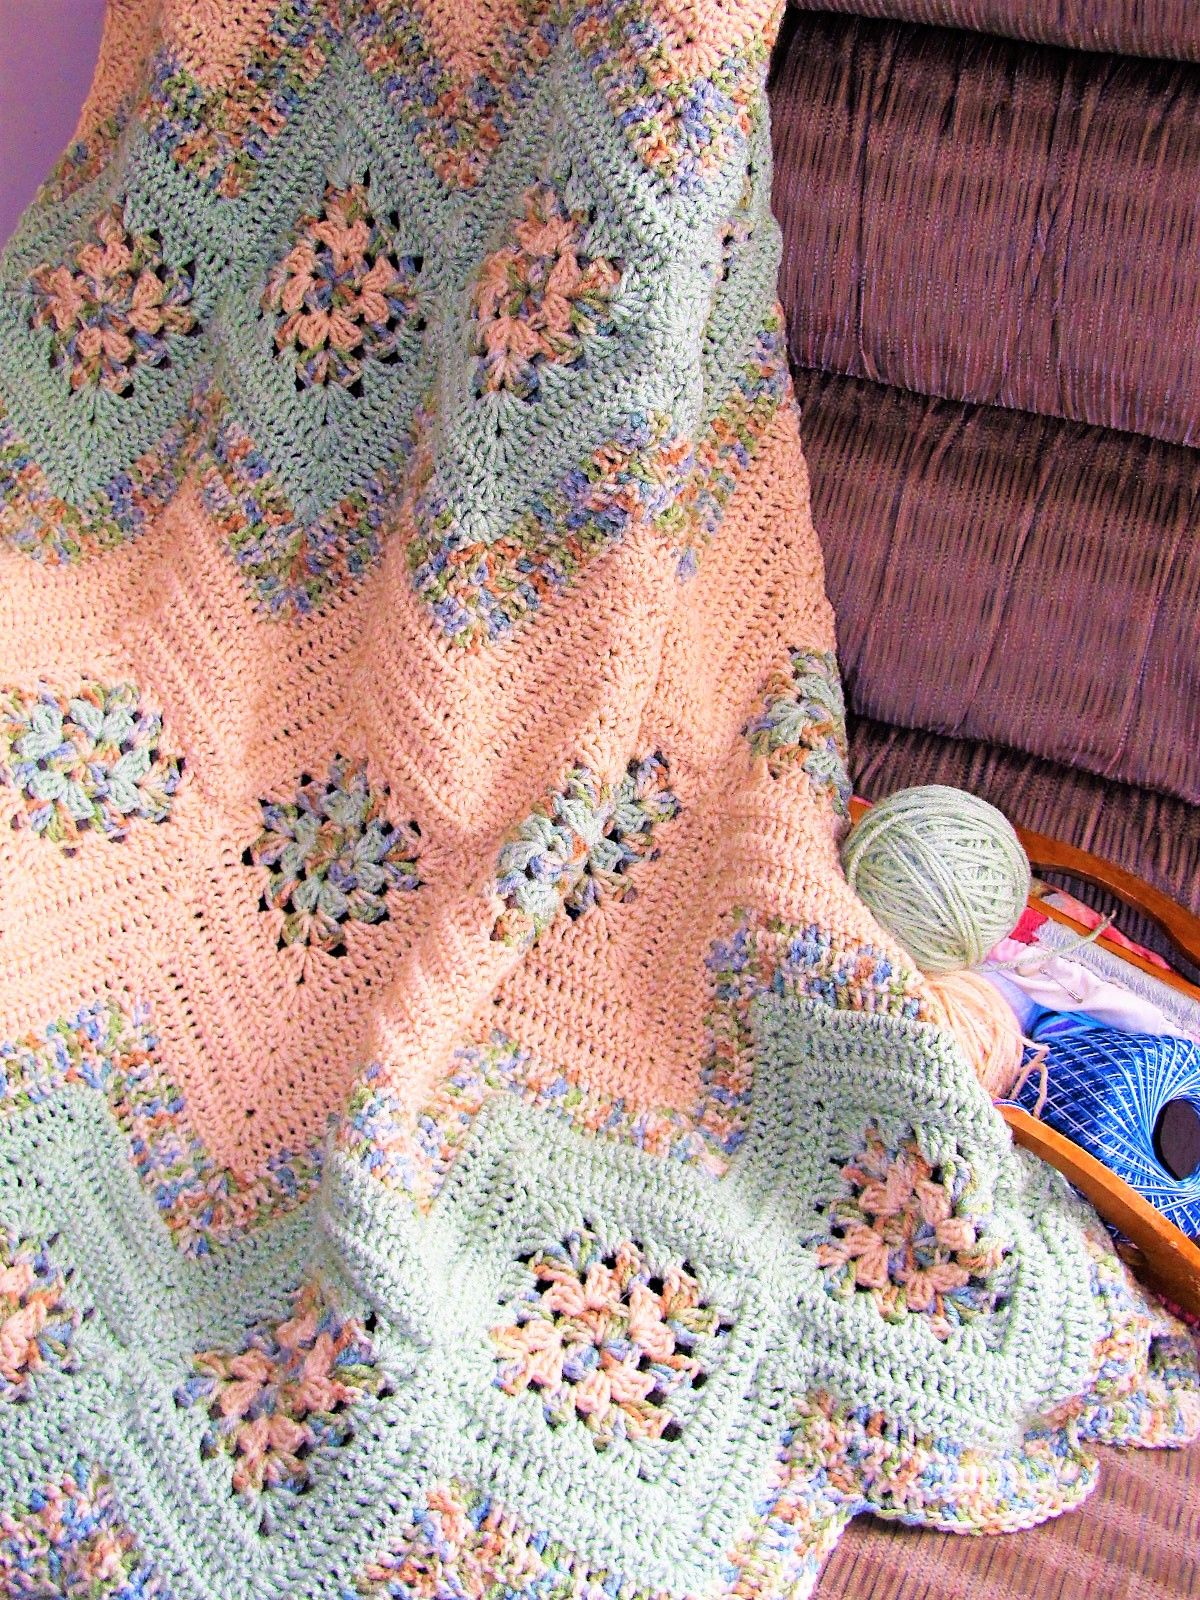 Free pattern this absolute beauty grannies and ripples afghan free pattern this absolute beauty grannies and ripples afghan is one of the most cleverly worked crocheted ive seen handmade kniting jewelry bankloansurffo Images